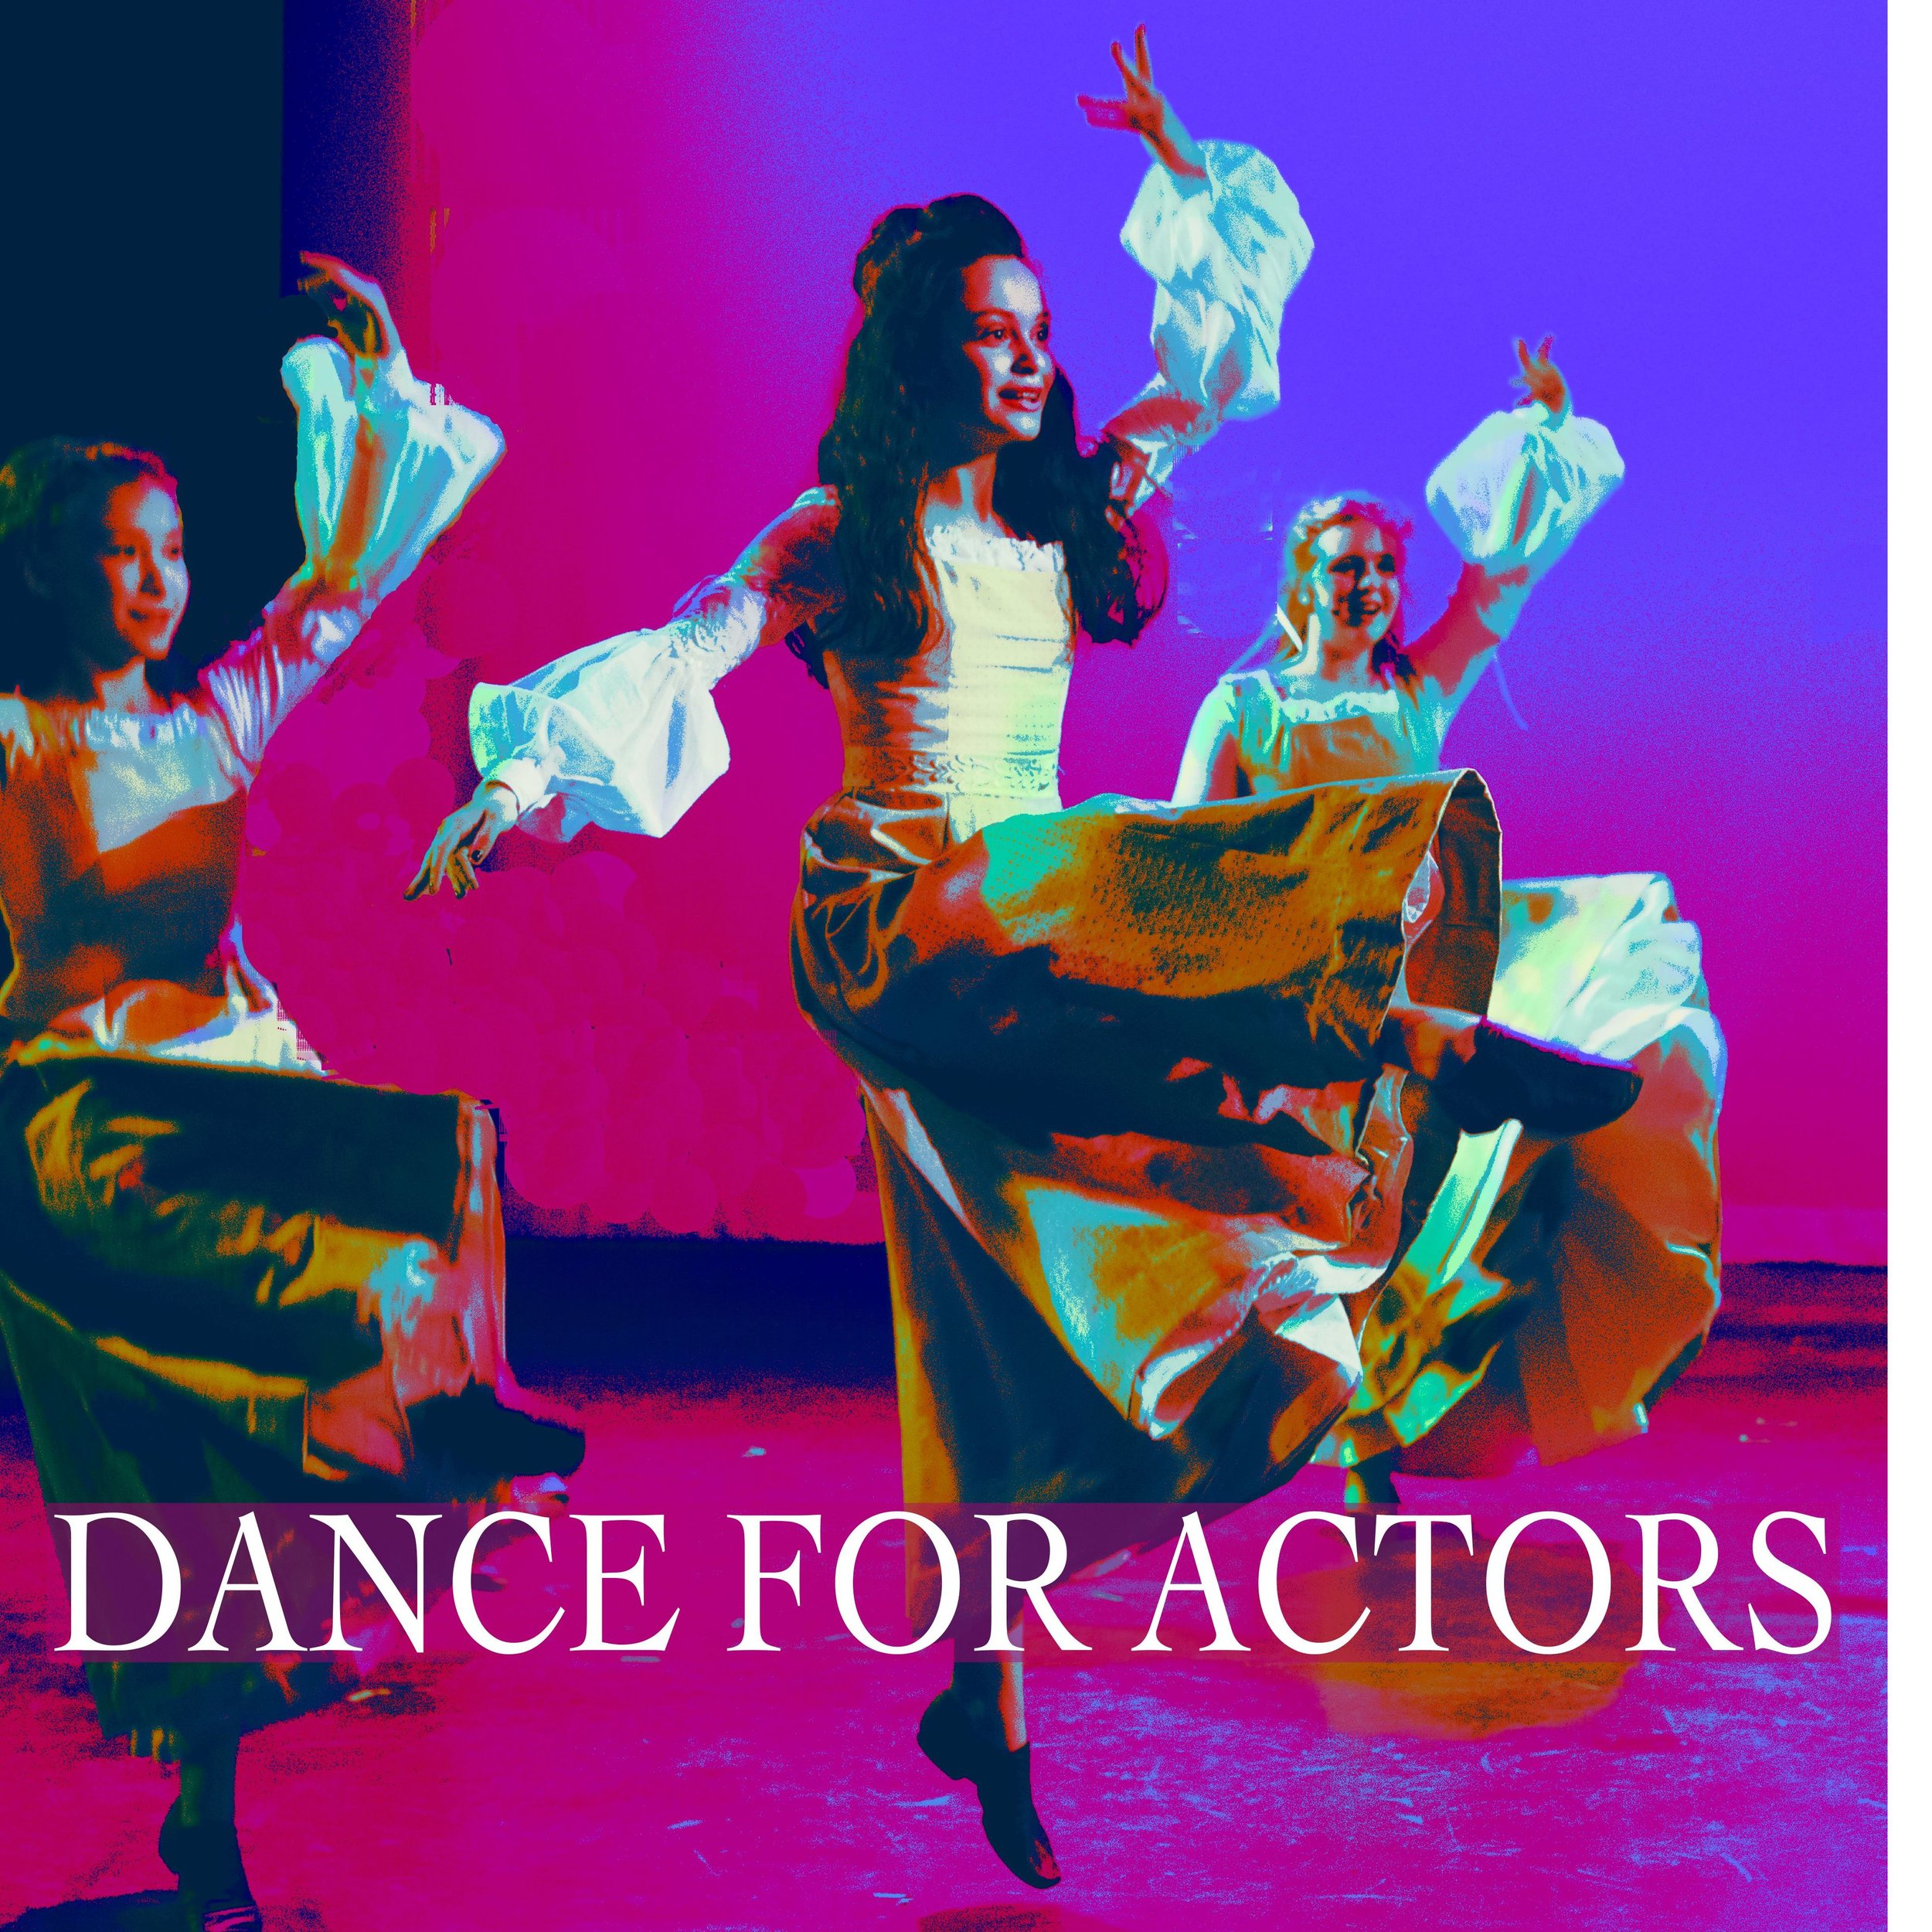 DANCE FOR ACTORS - WITH KATHERINE PARTINGTONAGES 11 - 19